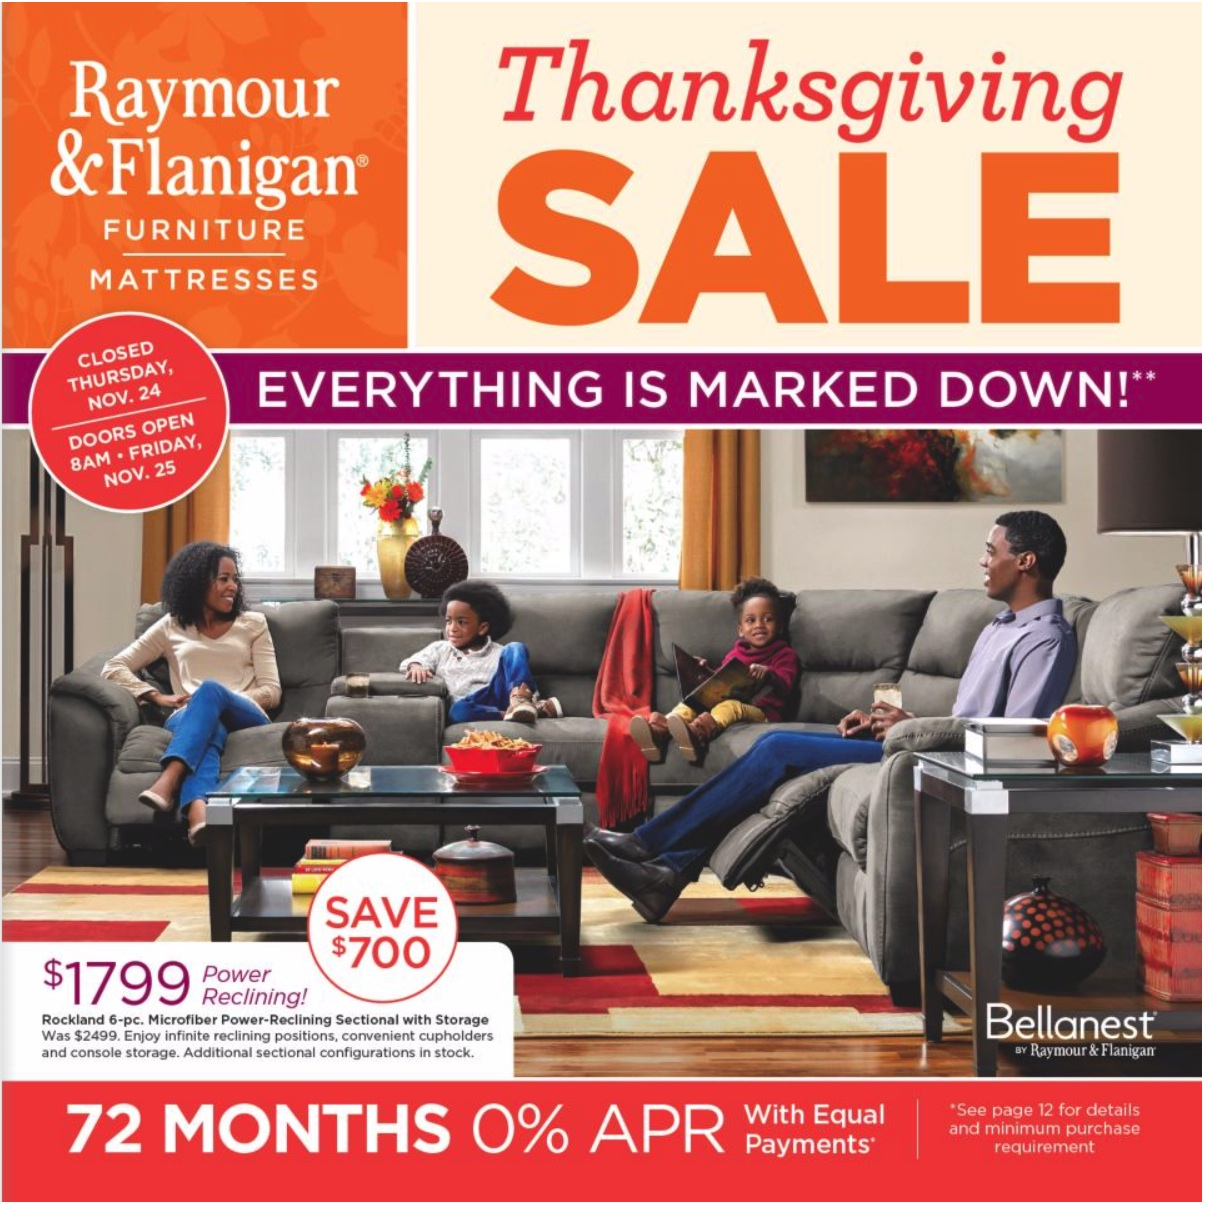 Black Friday Couch Deals: Raymour And Flanigan Black Friday 2019 Ad For Furniture